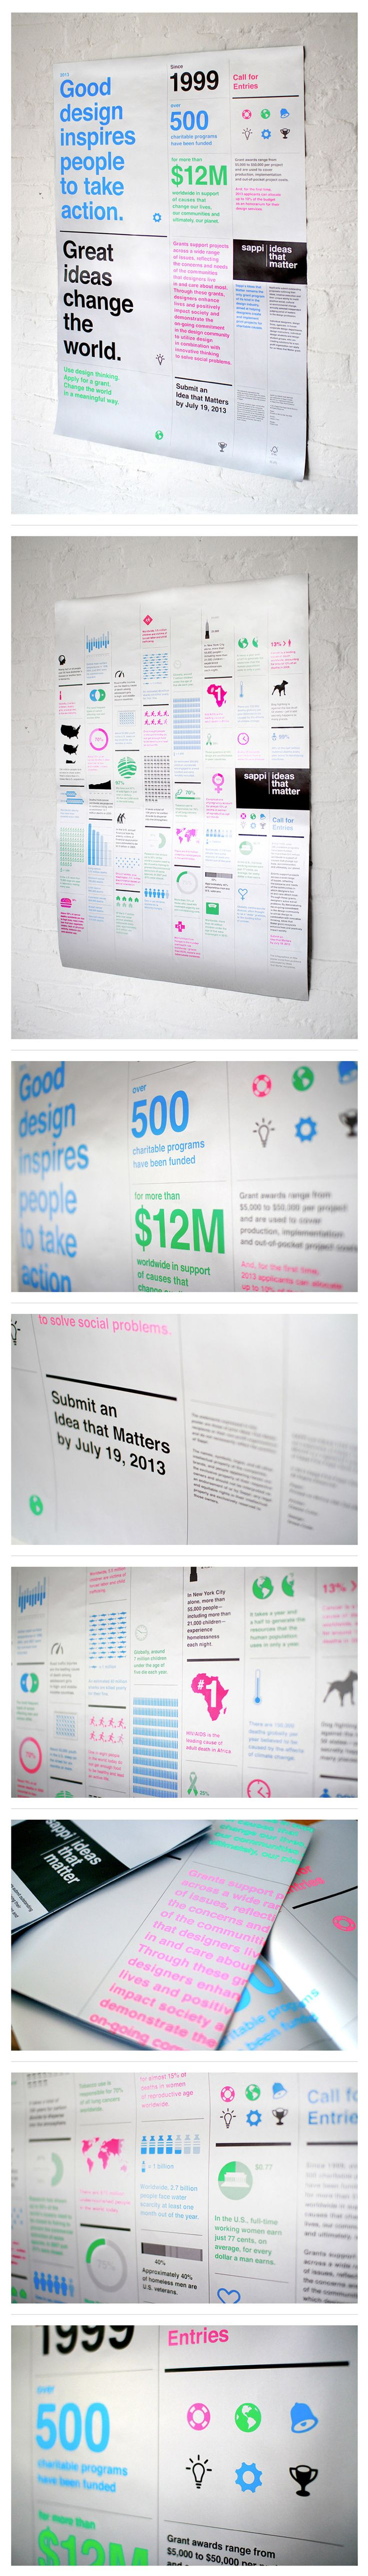 I like the simplicity and colors showing all this information. It could be cool to do an internal poster like this sometime that communicates core values or something.